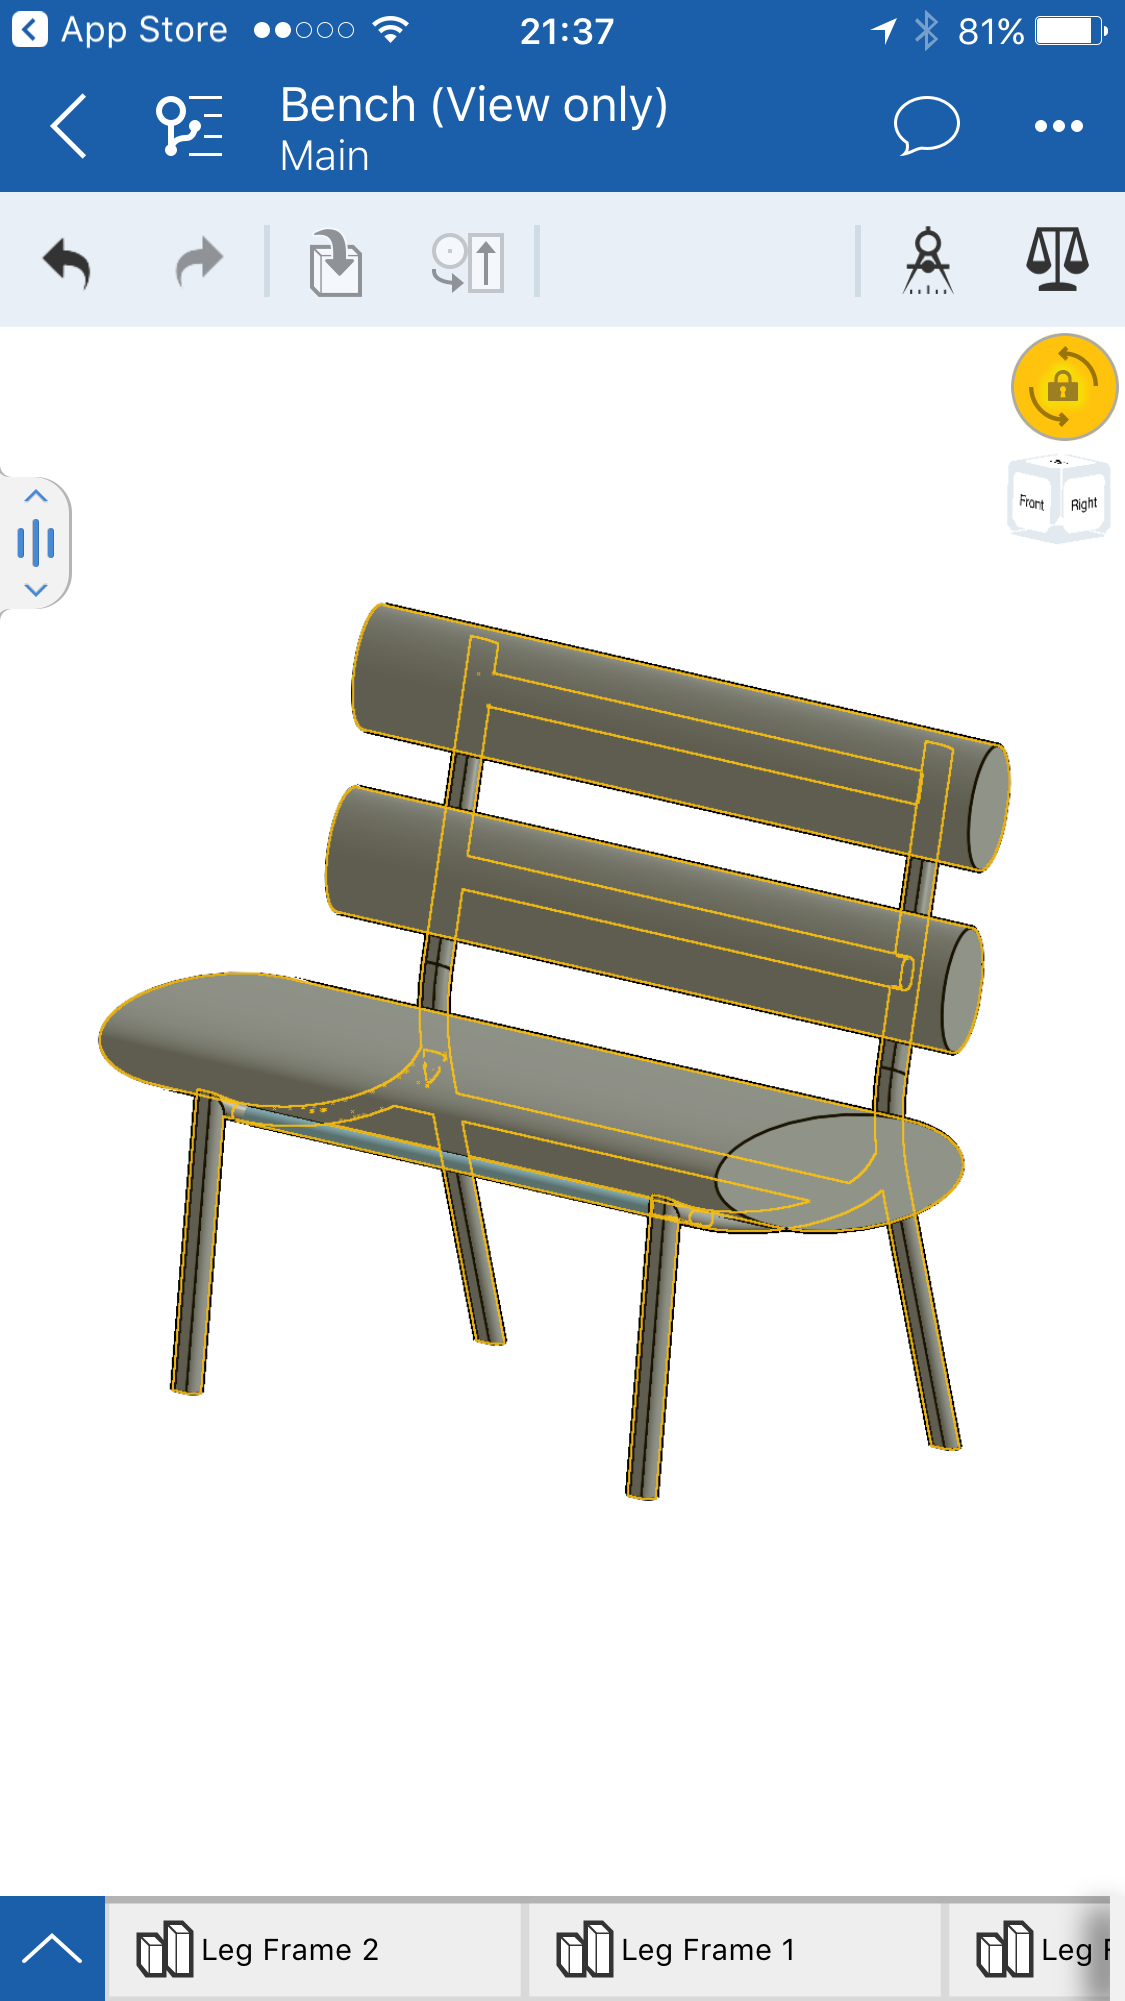 3D Cad model of metal frame and upholstered bench.